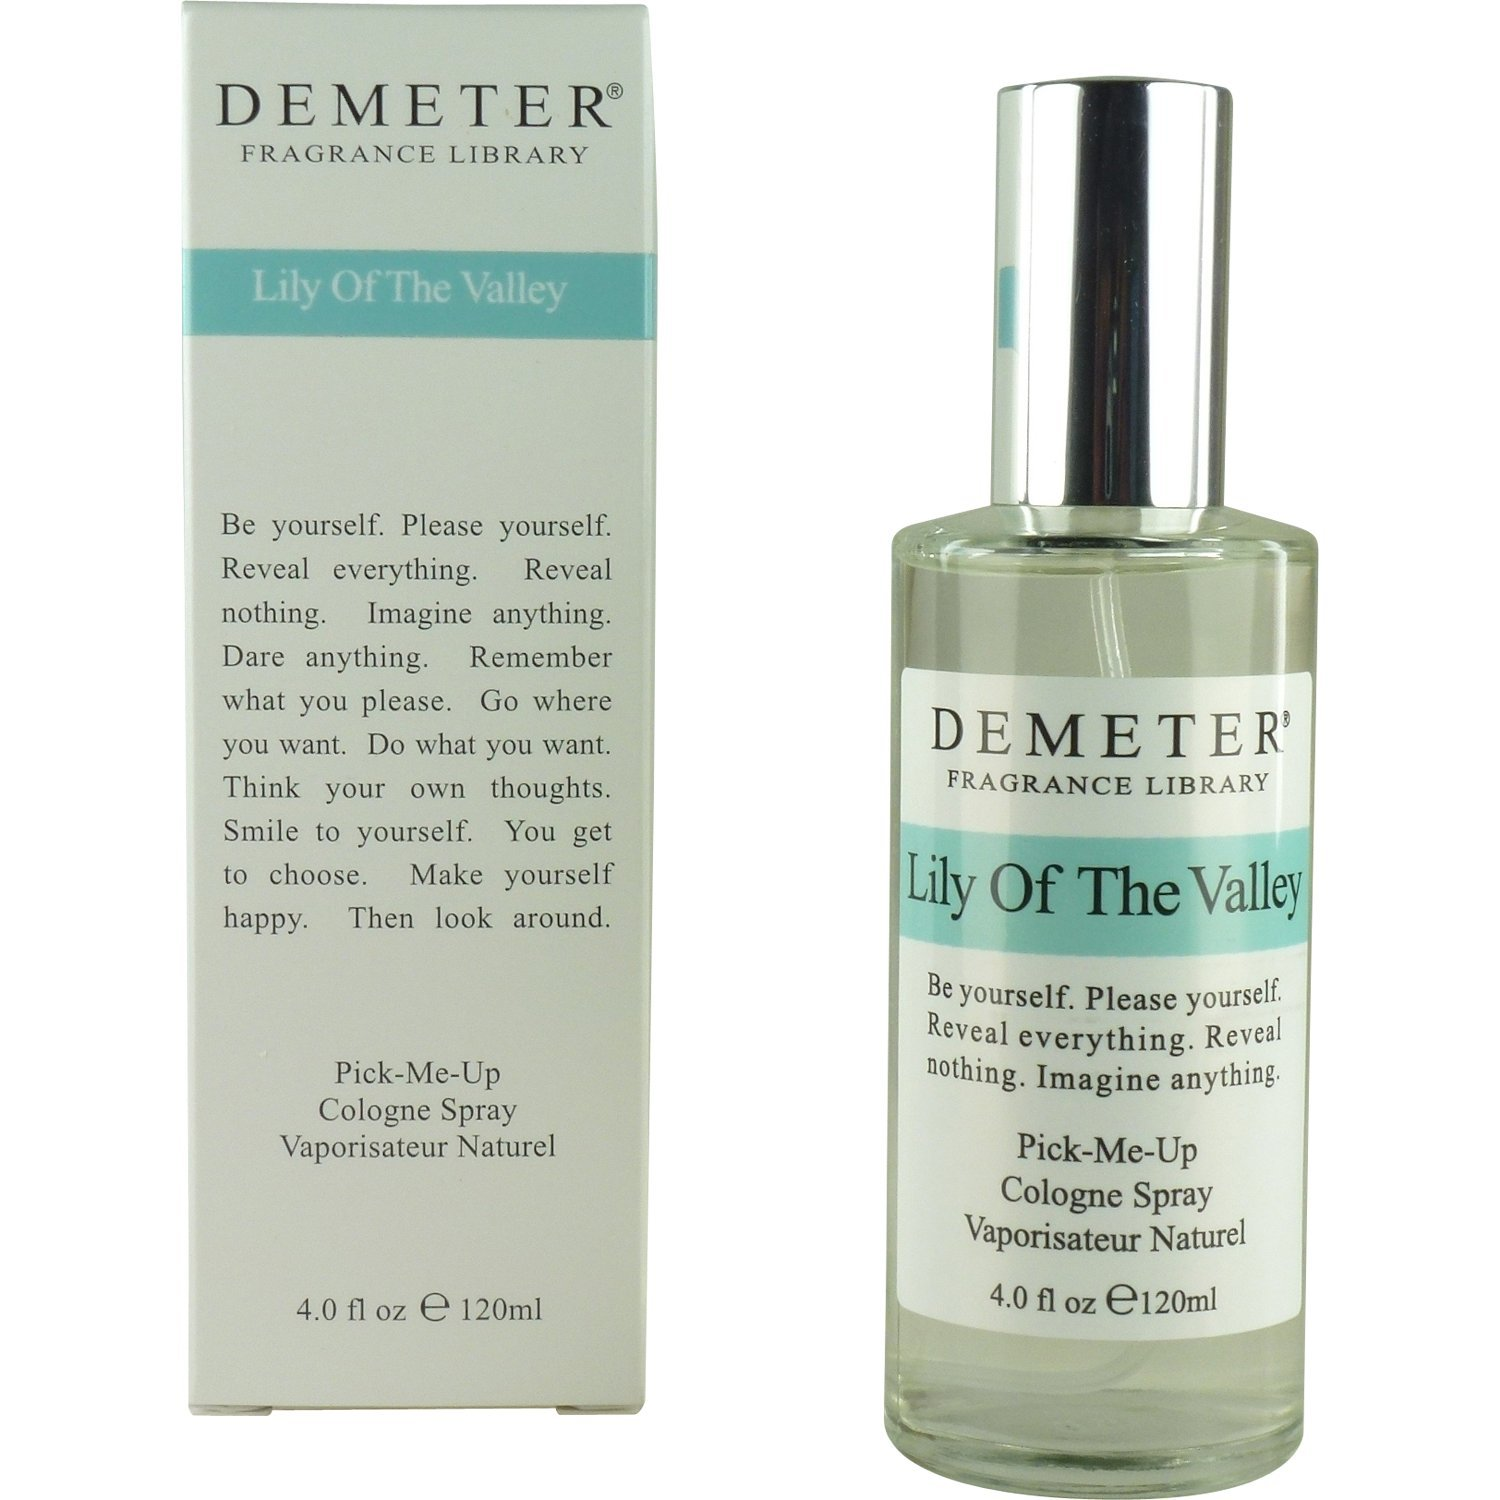 Demeter Lily Of Super intense SALE The Valley Spray - 120ml Cologne unisex 4oz